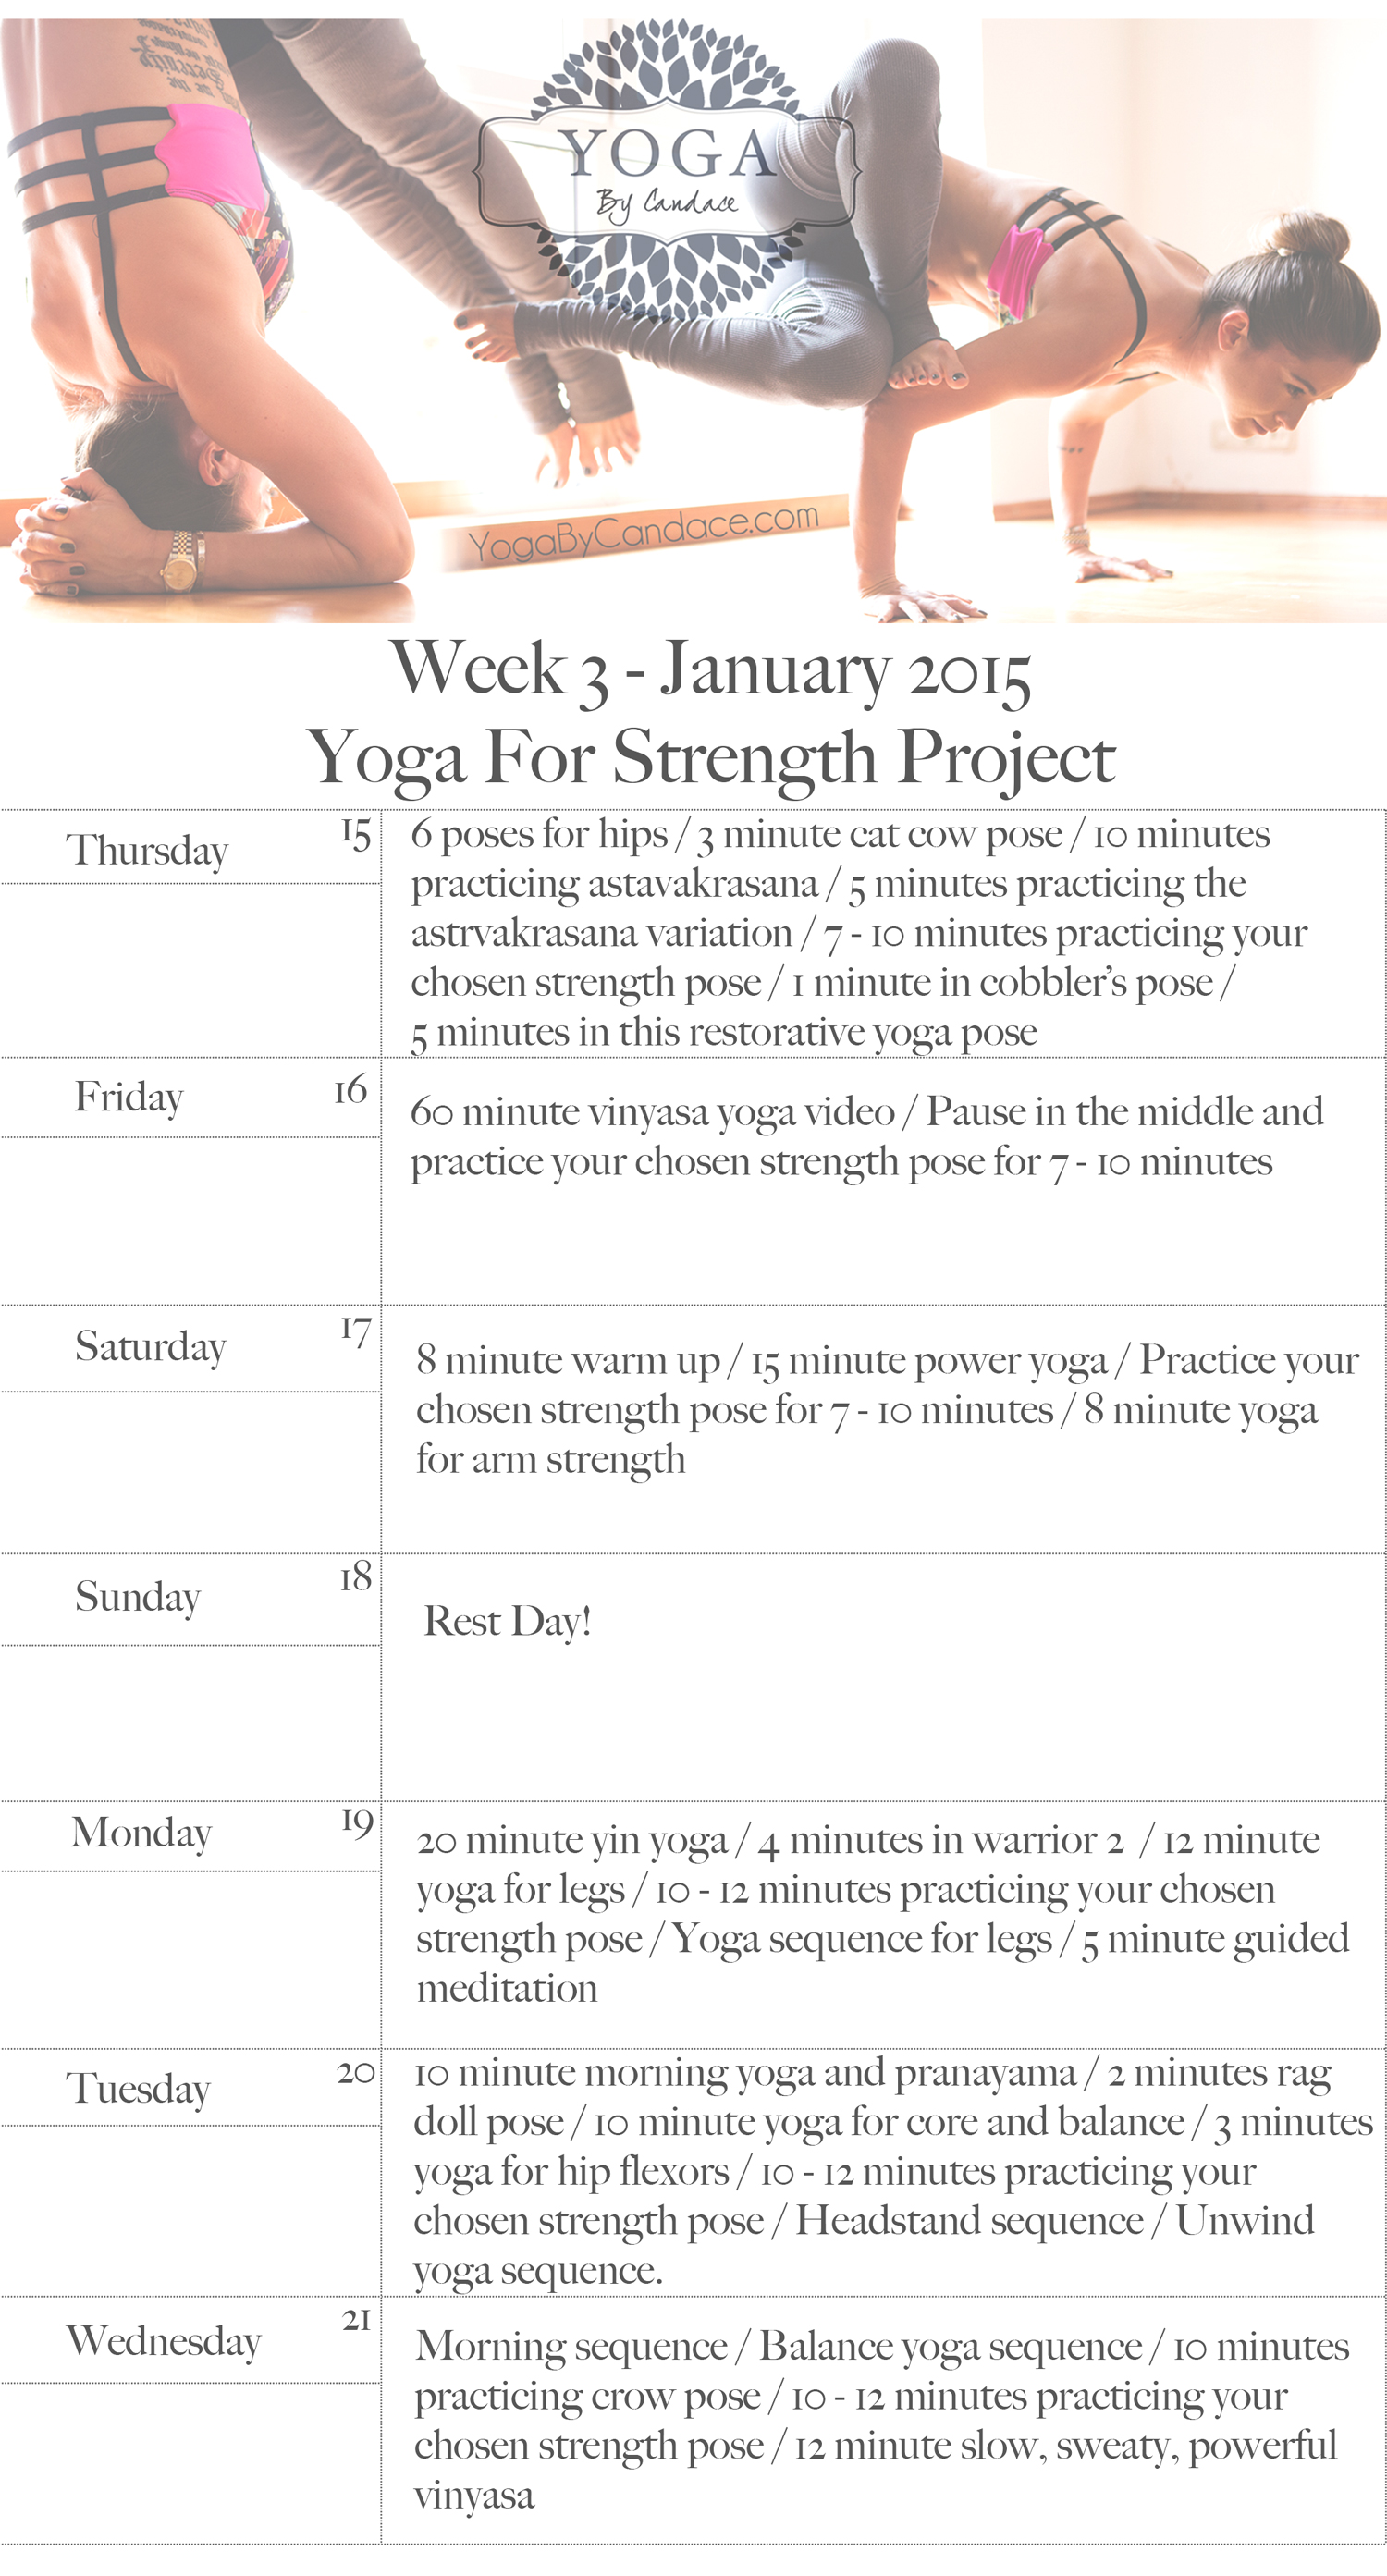 yoga-strength-project-week-3